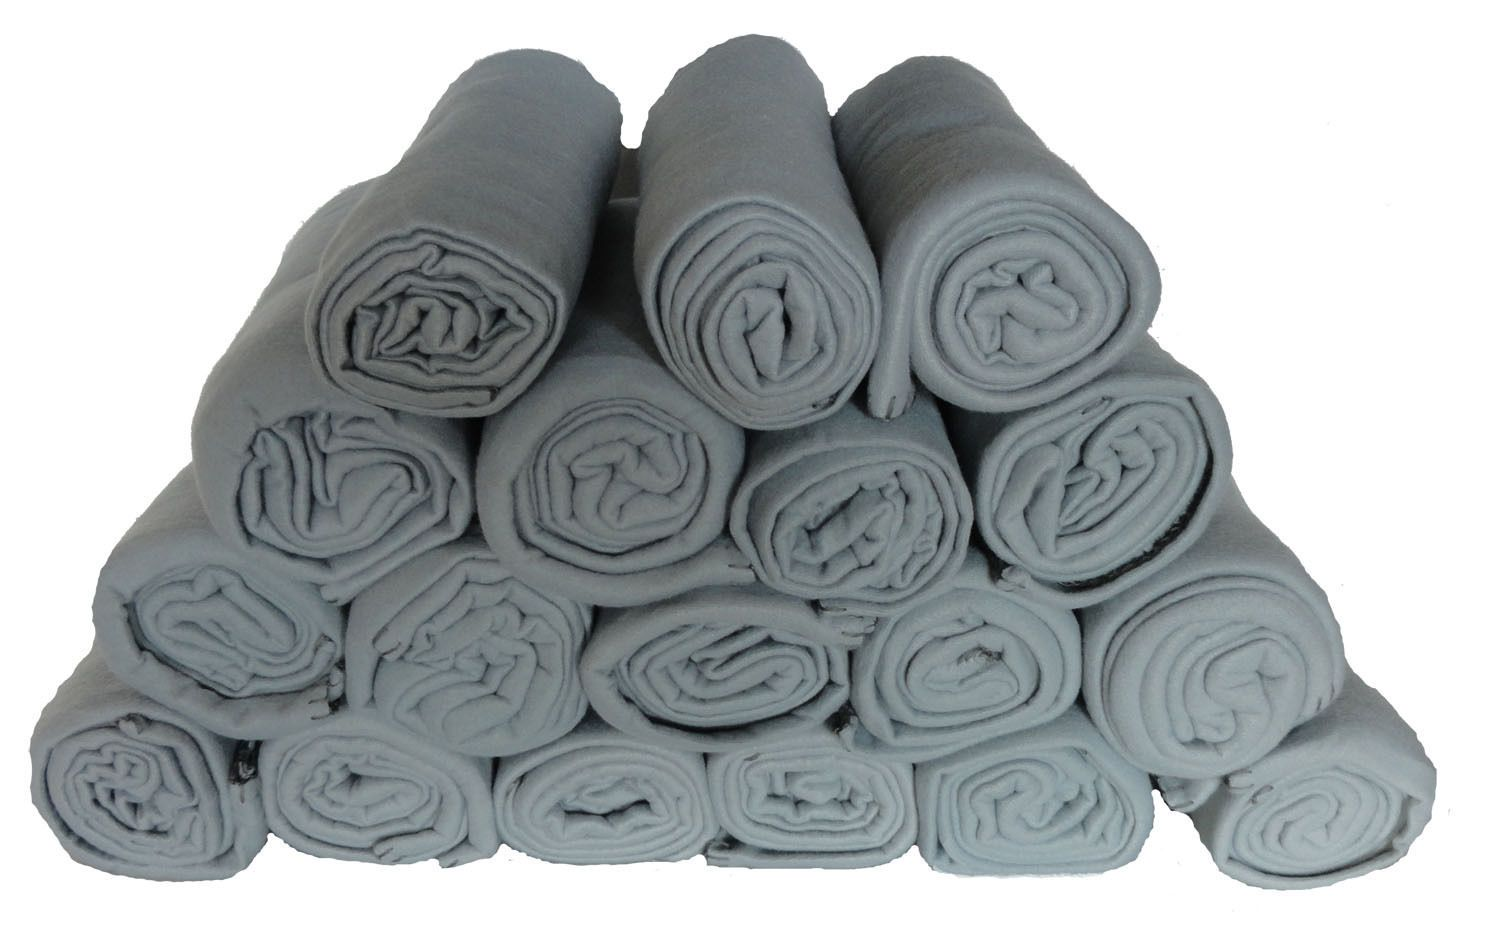 Bulk Throw Blankets Alluring Blankets And Throws 175750 Gray Fleece Throw Blanket 50 X 60 Promo Decorating Inspiration